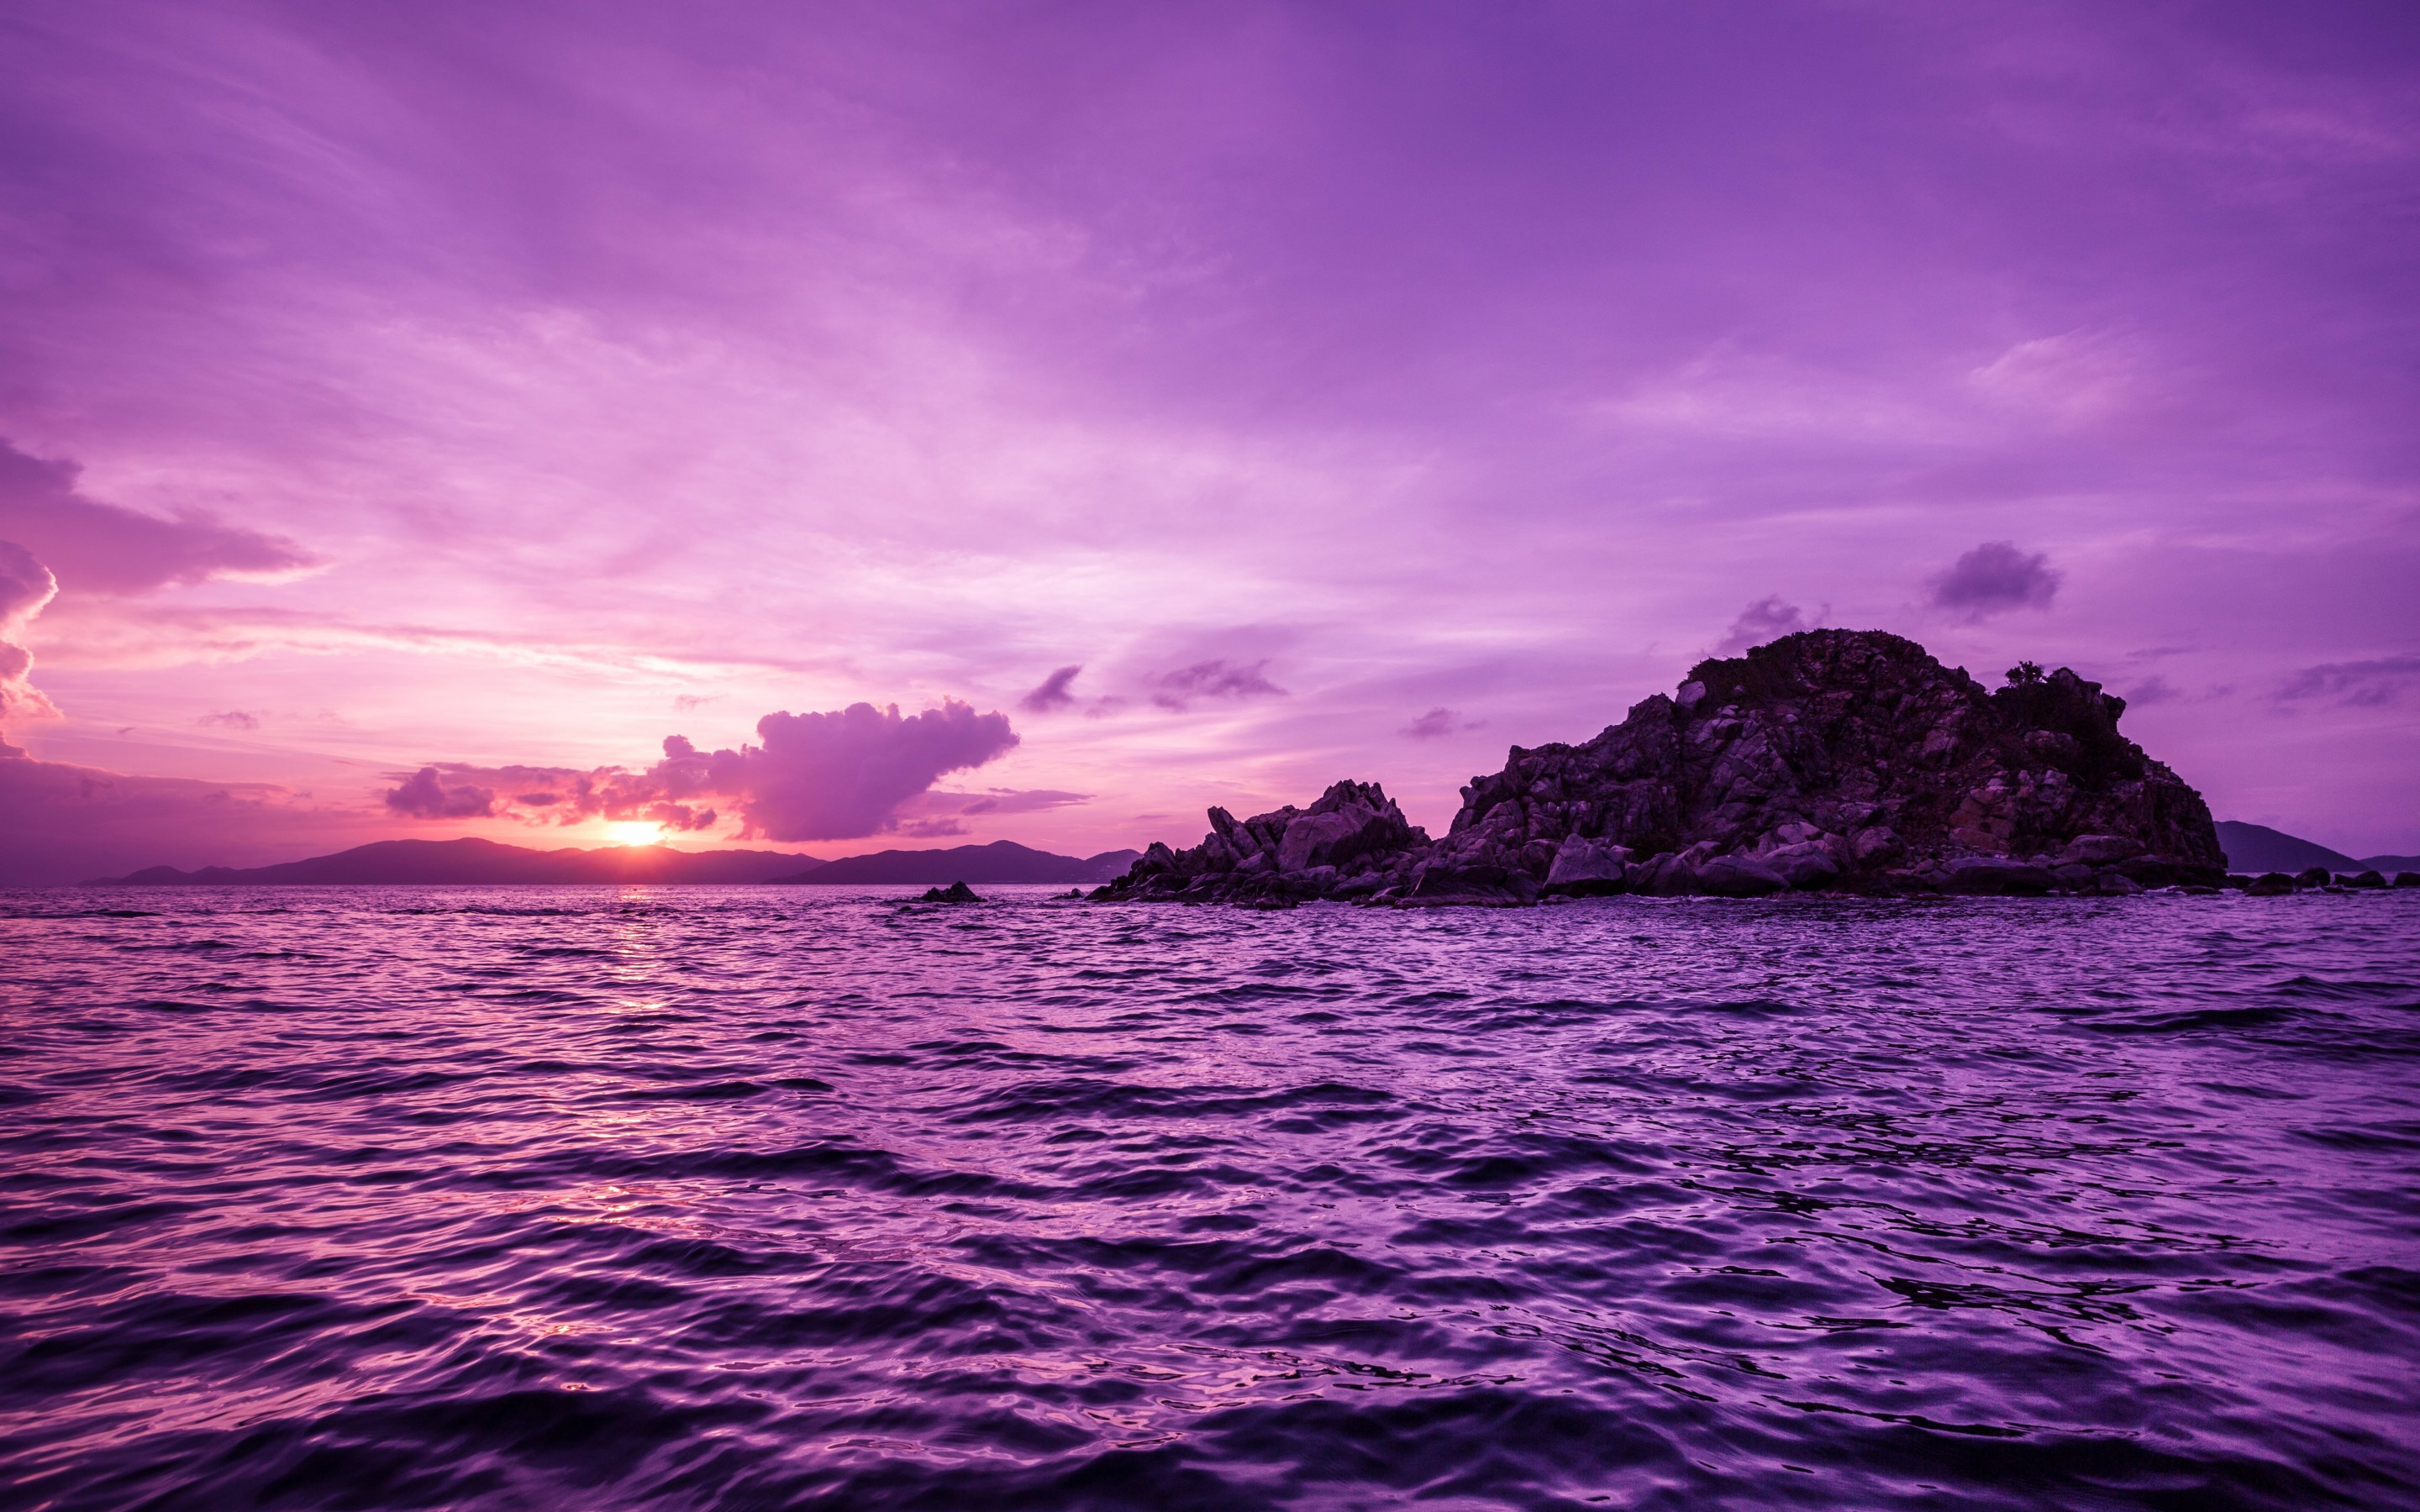 Pelican Island Sunset, British Virgin Islands Wallpaper for Desktop 2880x1800